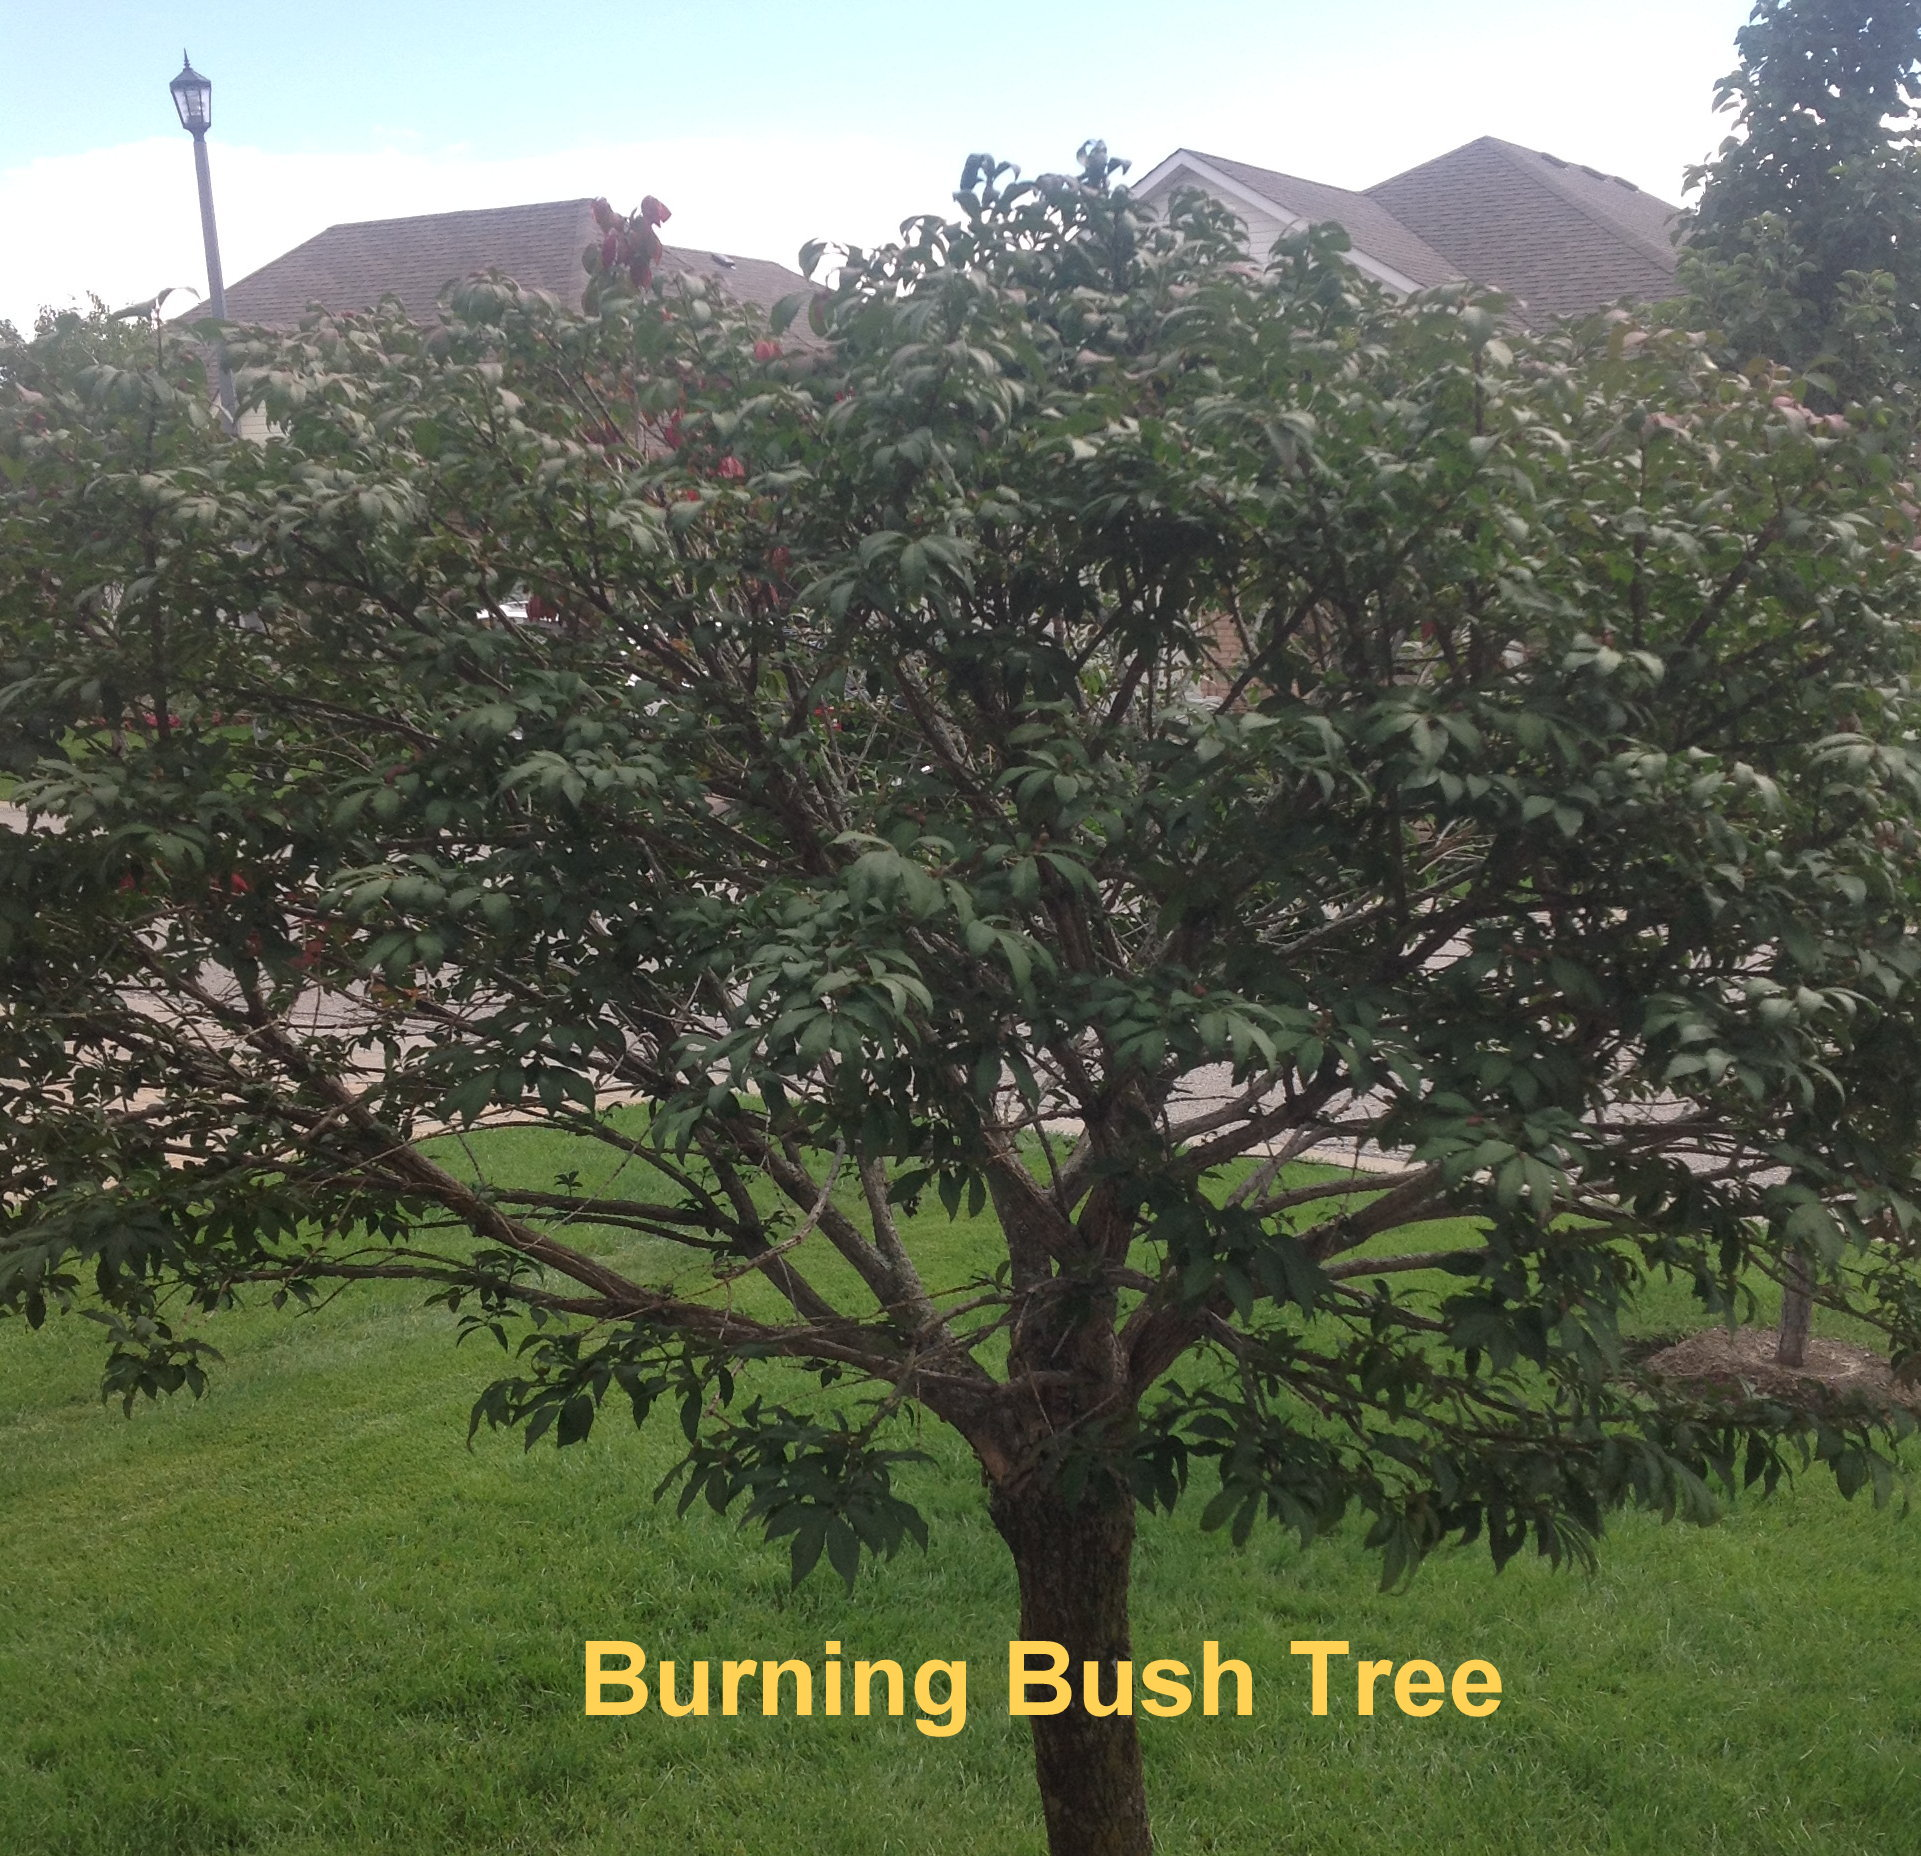 Pruning burning bush tree - Toronto Master Gardeners